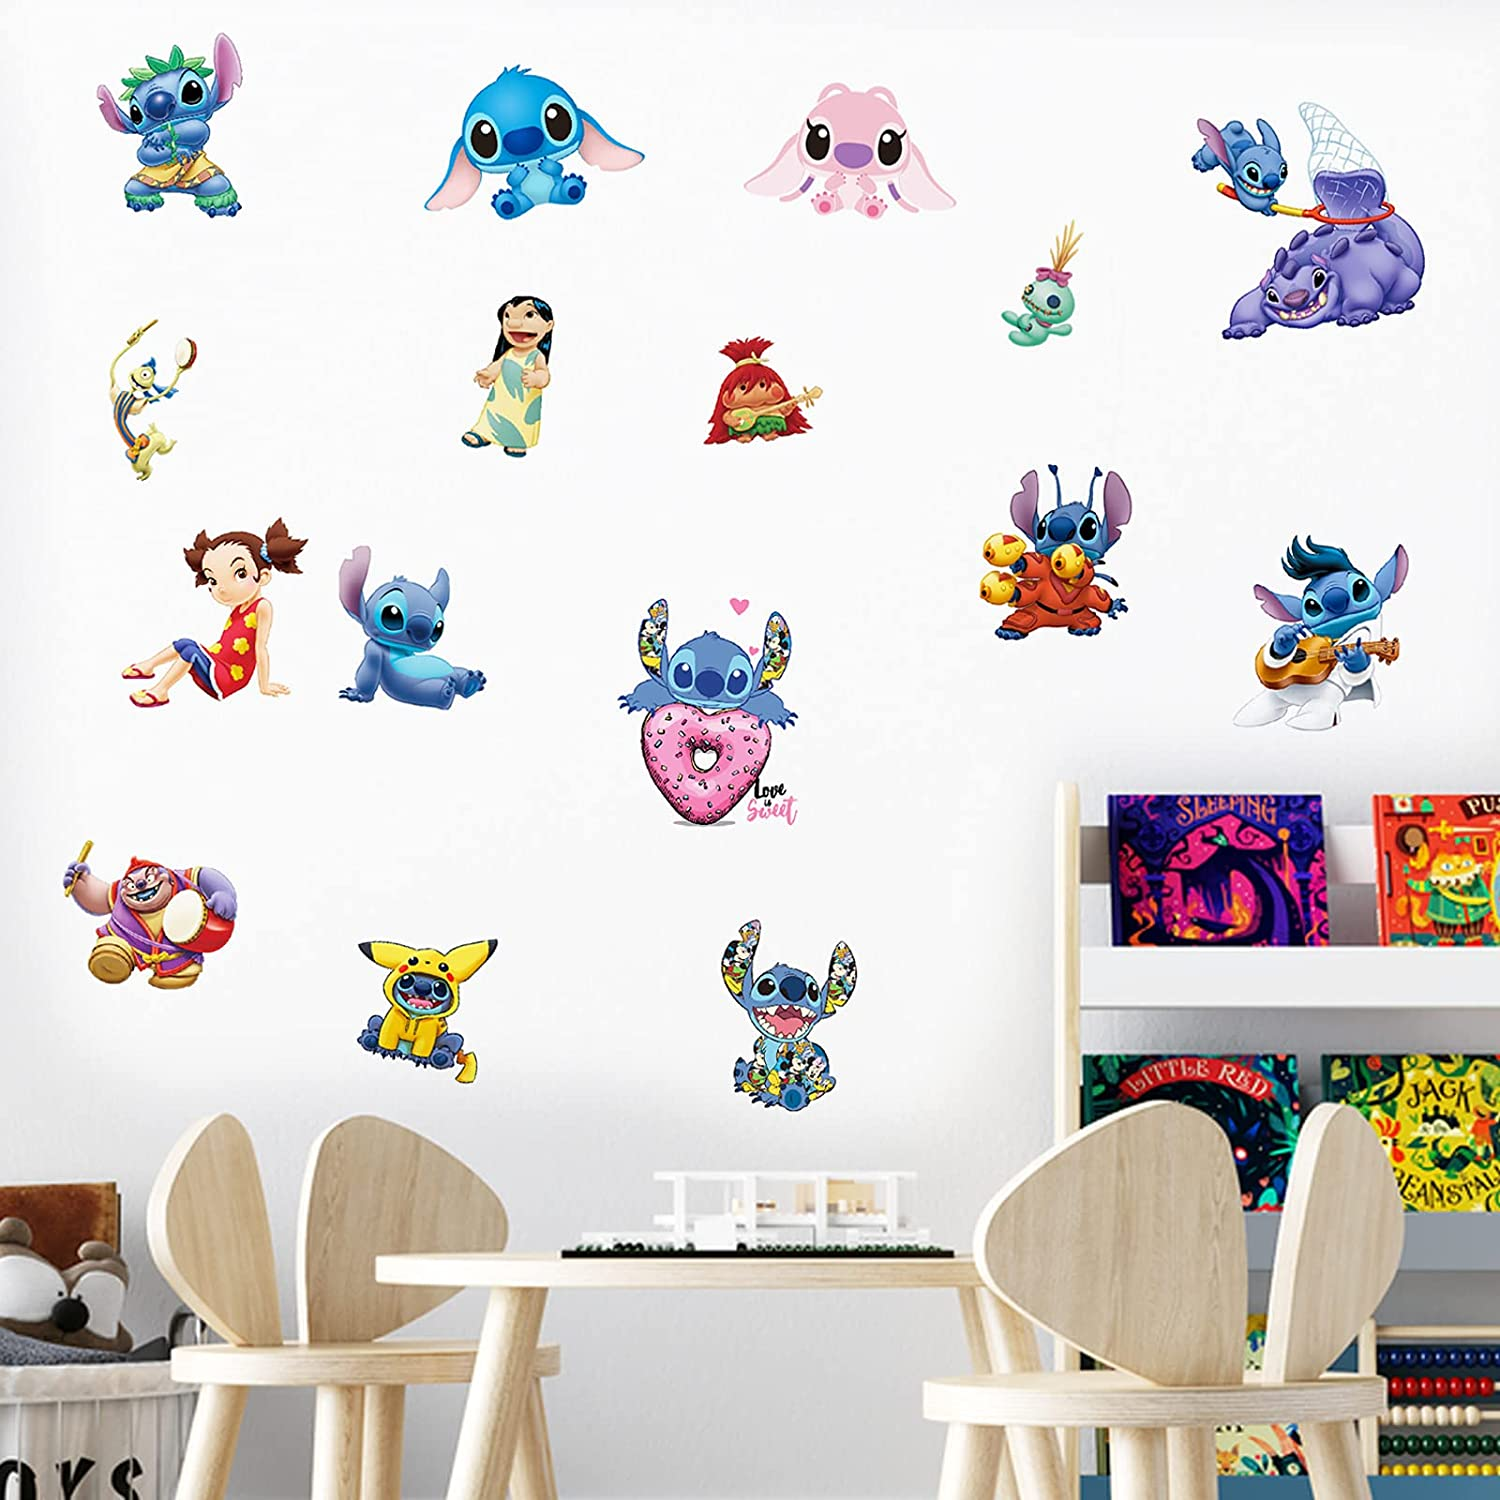 Lilo and Stitch Wall Decals 16×24in Ohana Means Family Cartoon Character Wall Art for Bedroom Nursery Playroom Stickers Decor Gifts for Kids